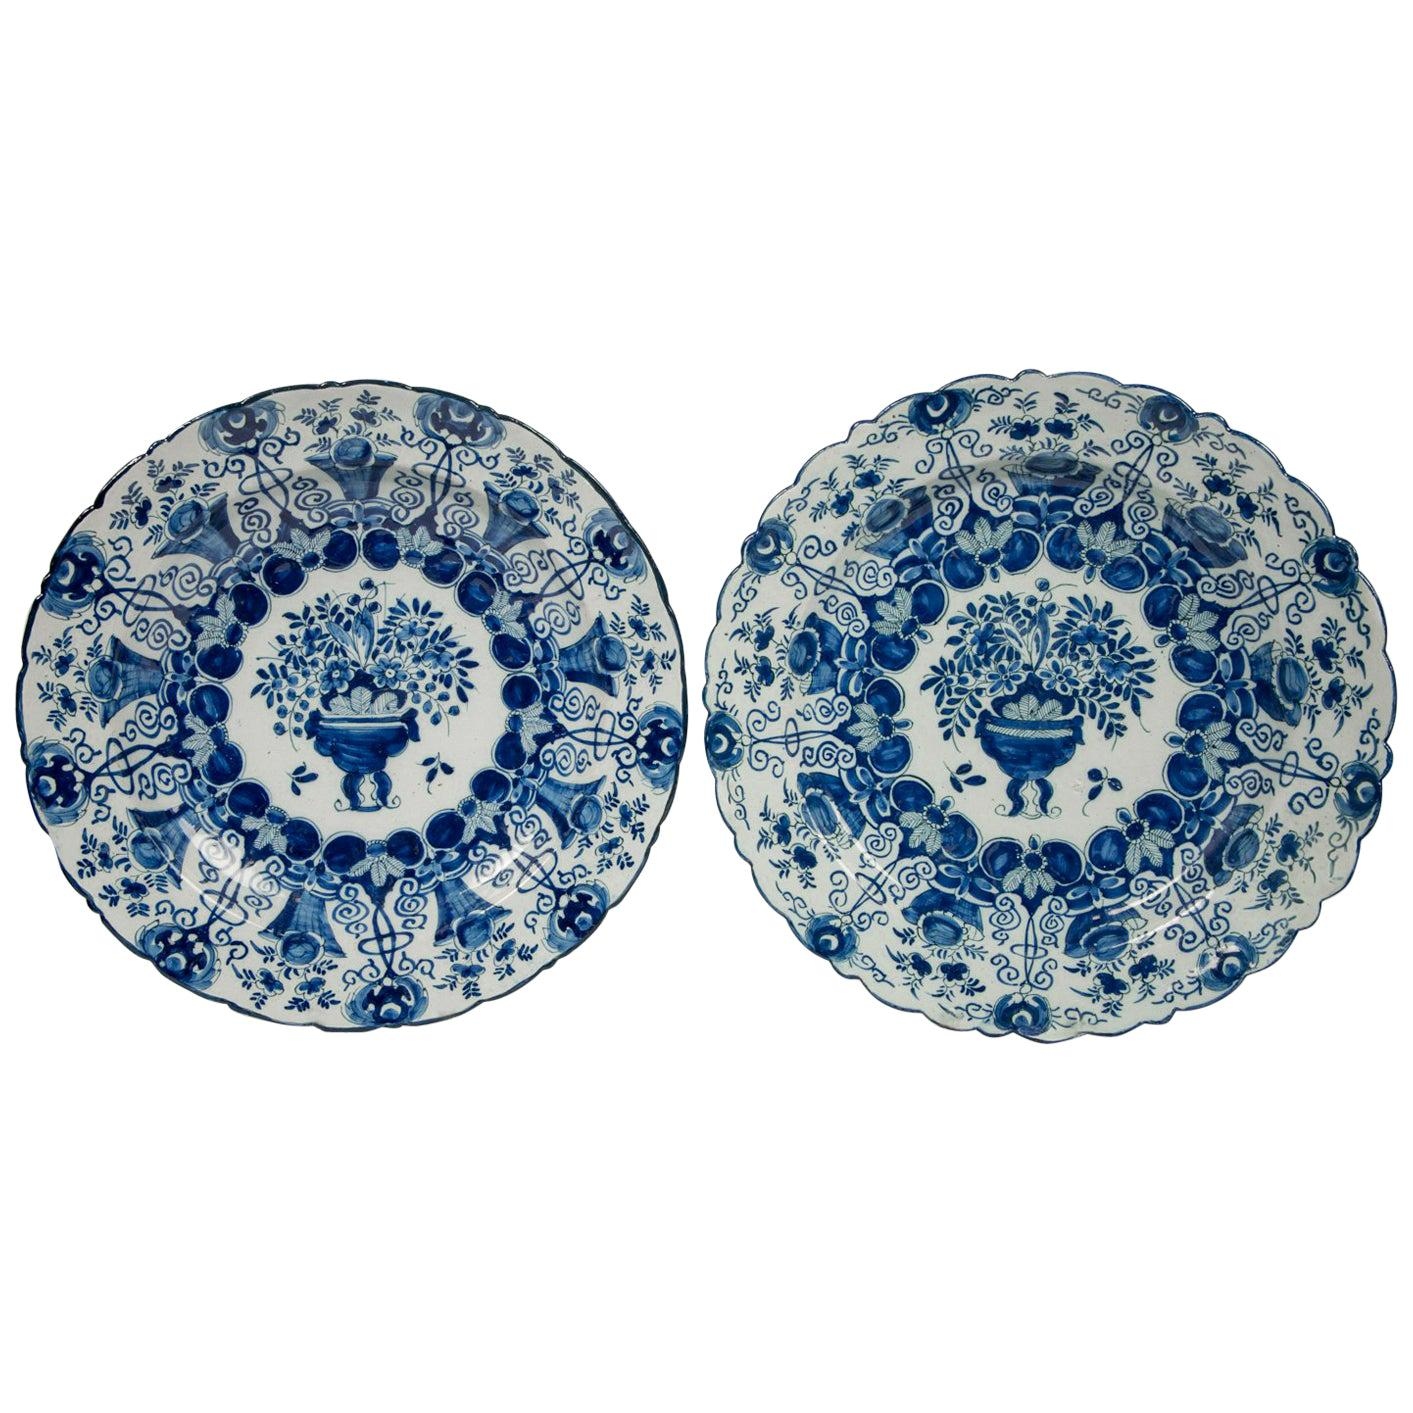 Pair of Large Blue and White Delft Chargers Made, circa 1780